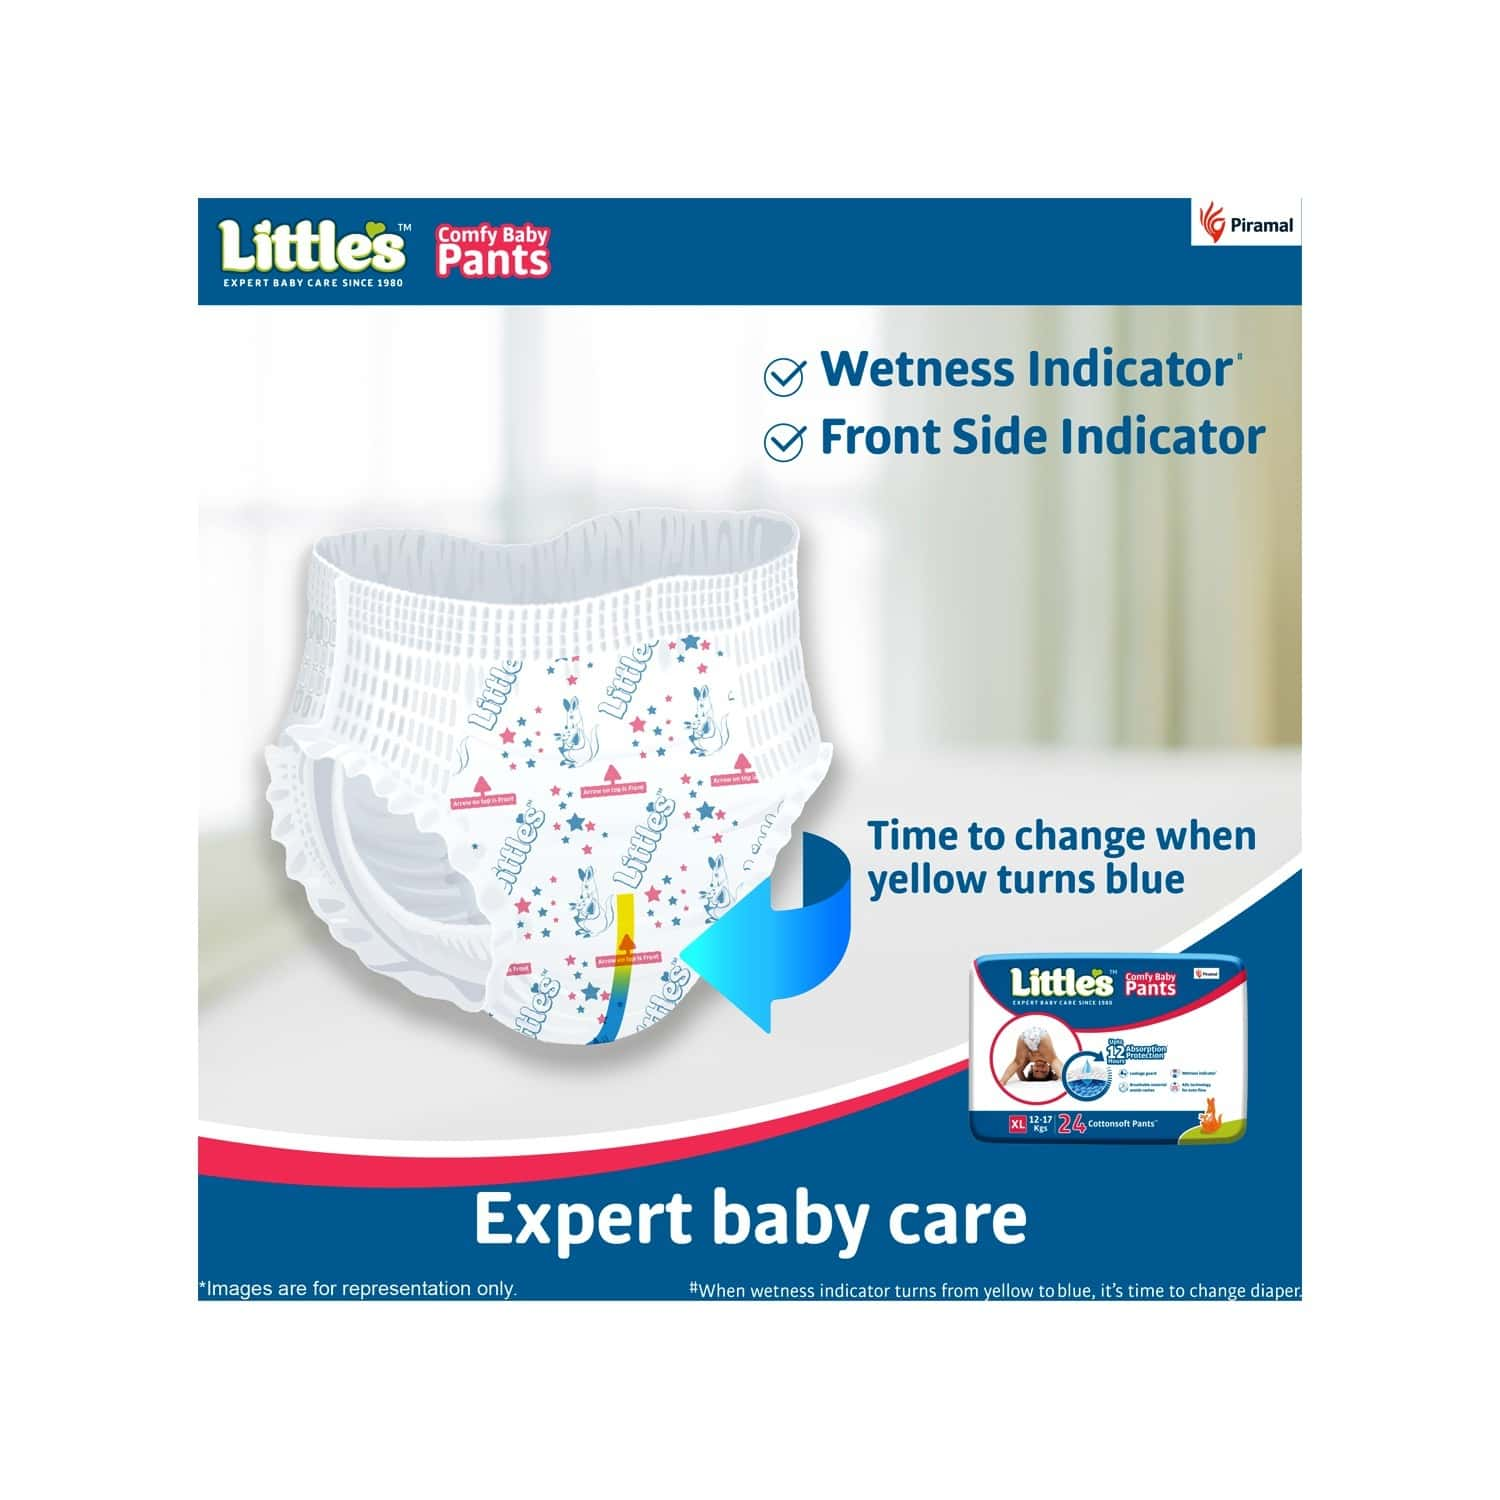 Little's Comfy Baby Pants Diapers With Wetness Indicator And 12 Hours Absorption - Extra Large 24 Pants